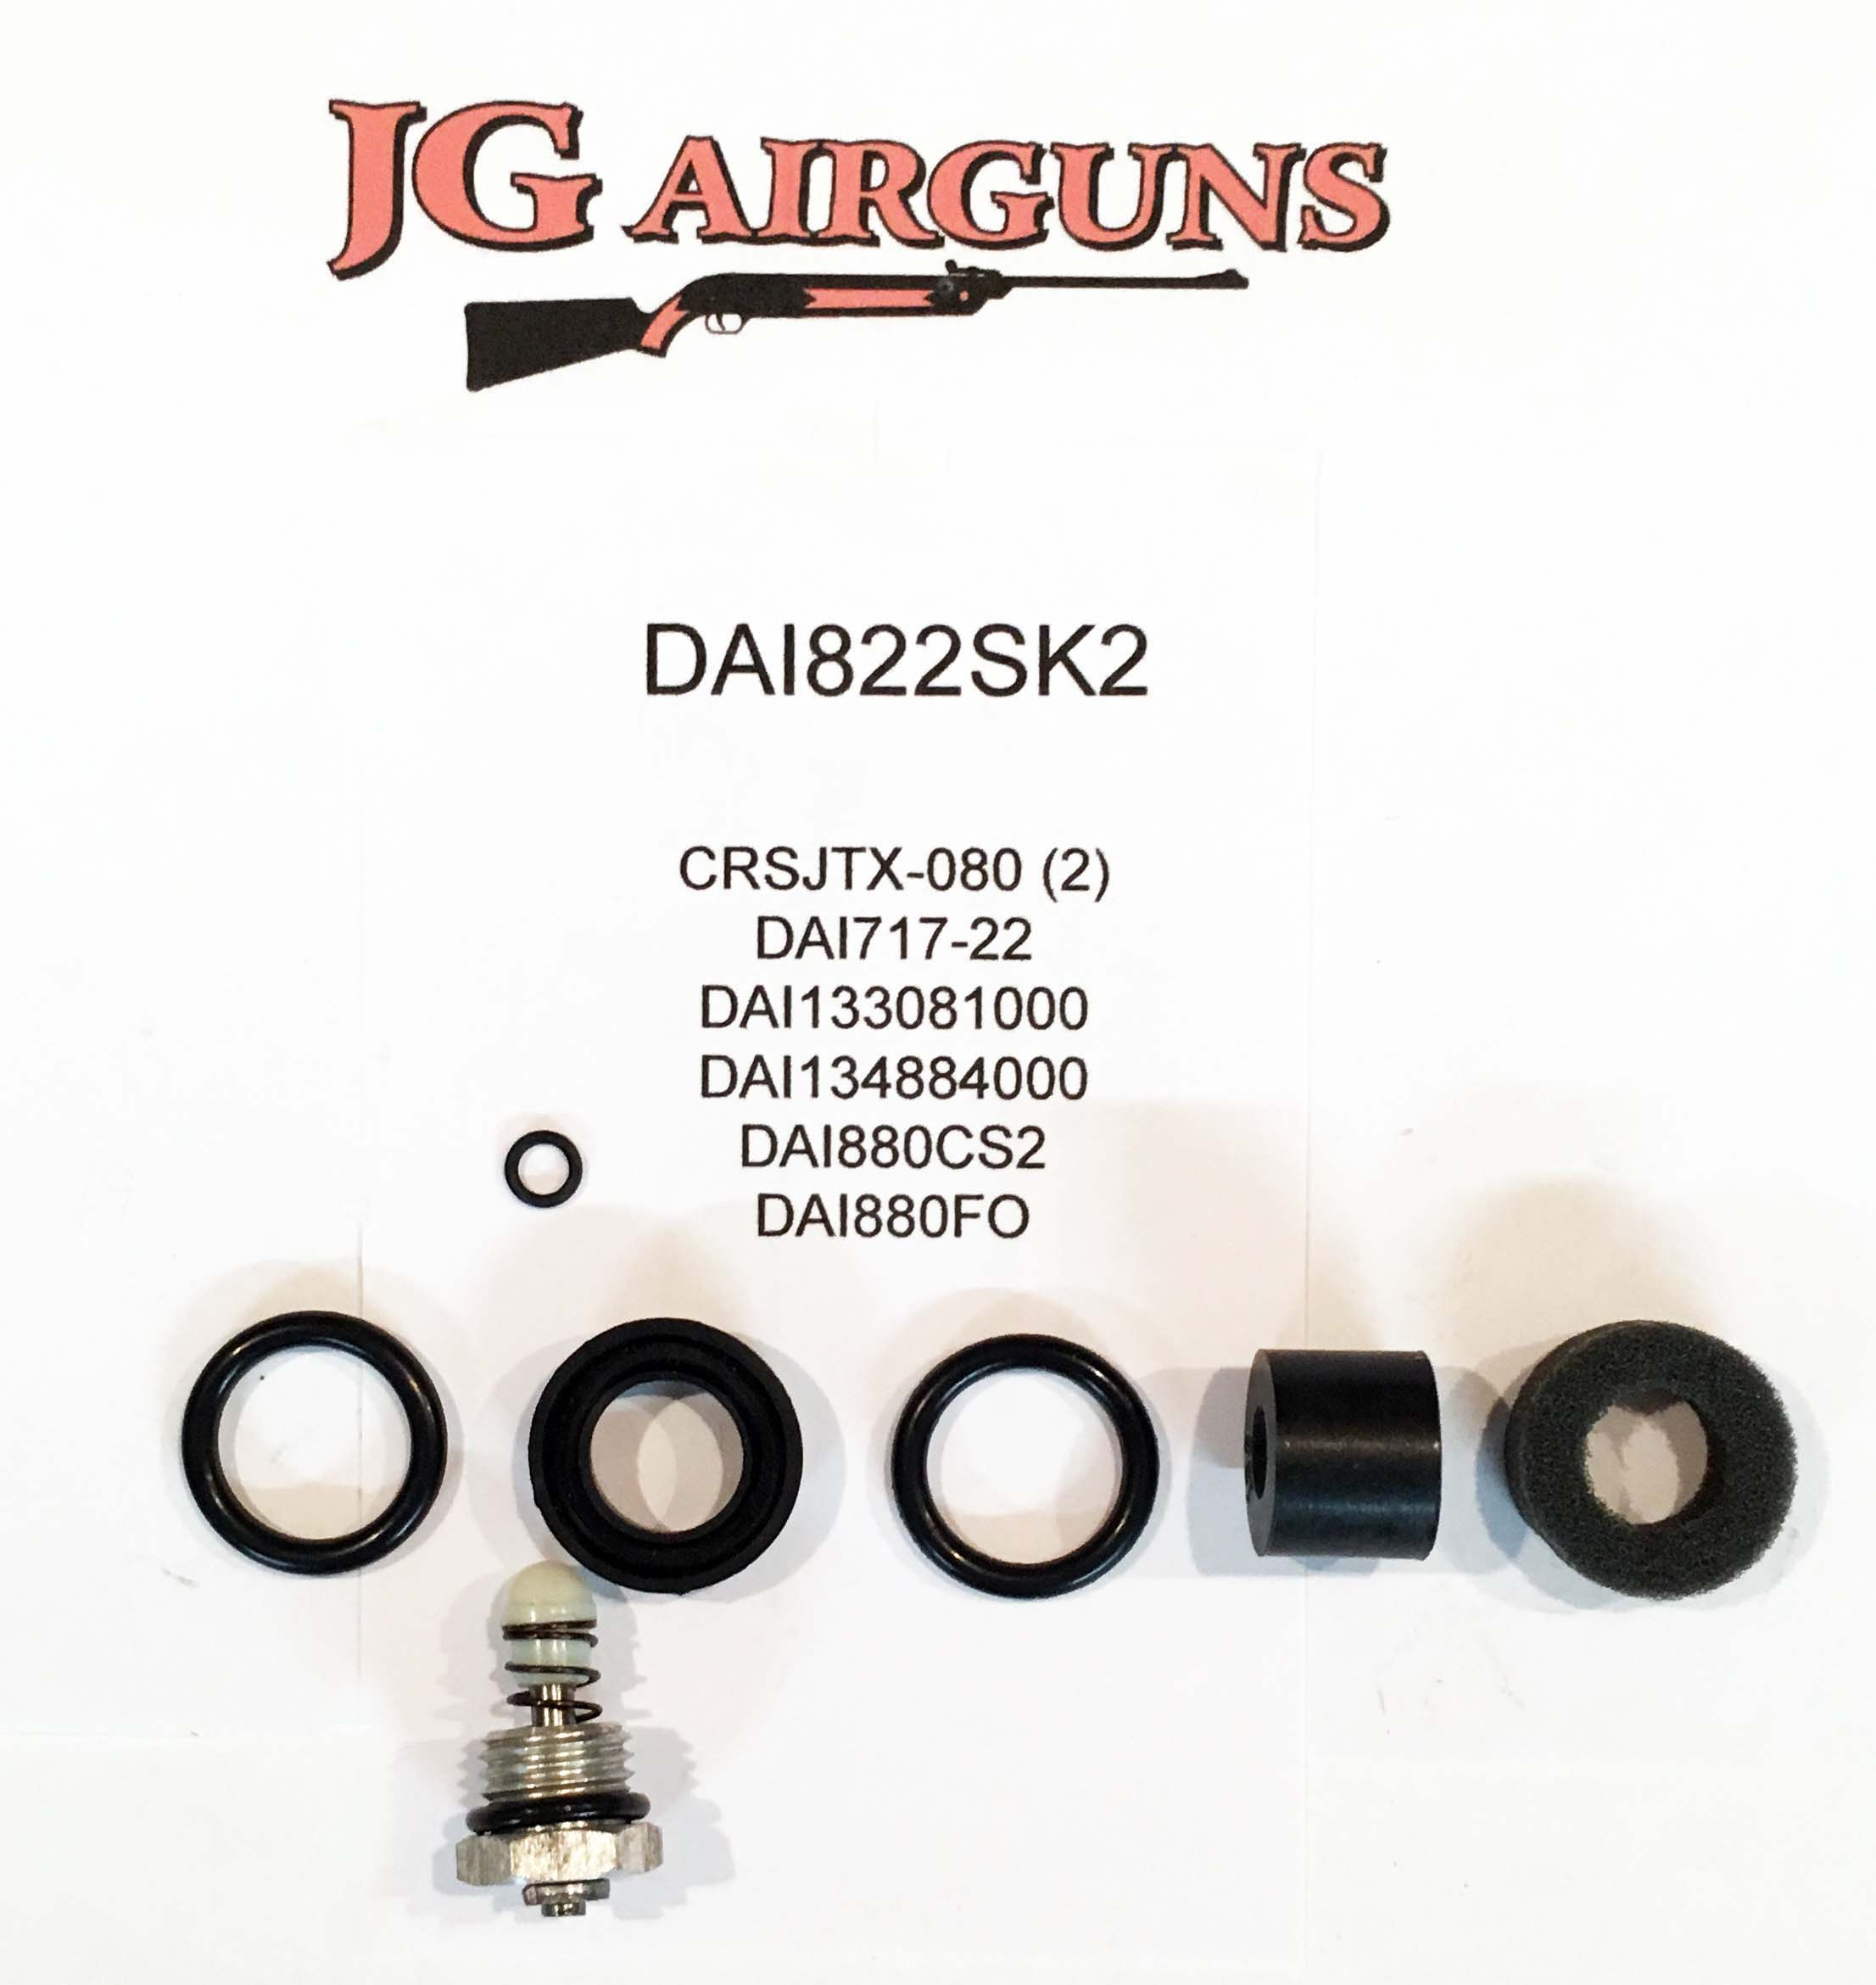 DAI822SK2 COMPLETE Seal Kit Wood stock version